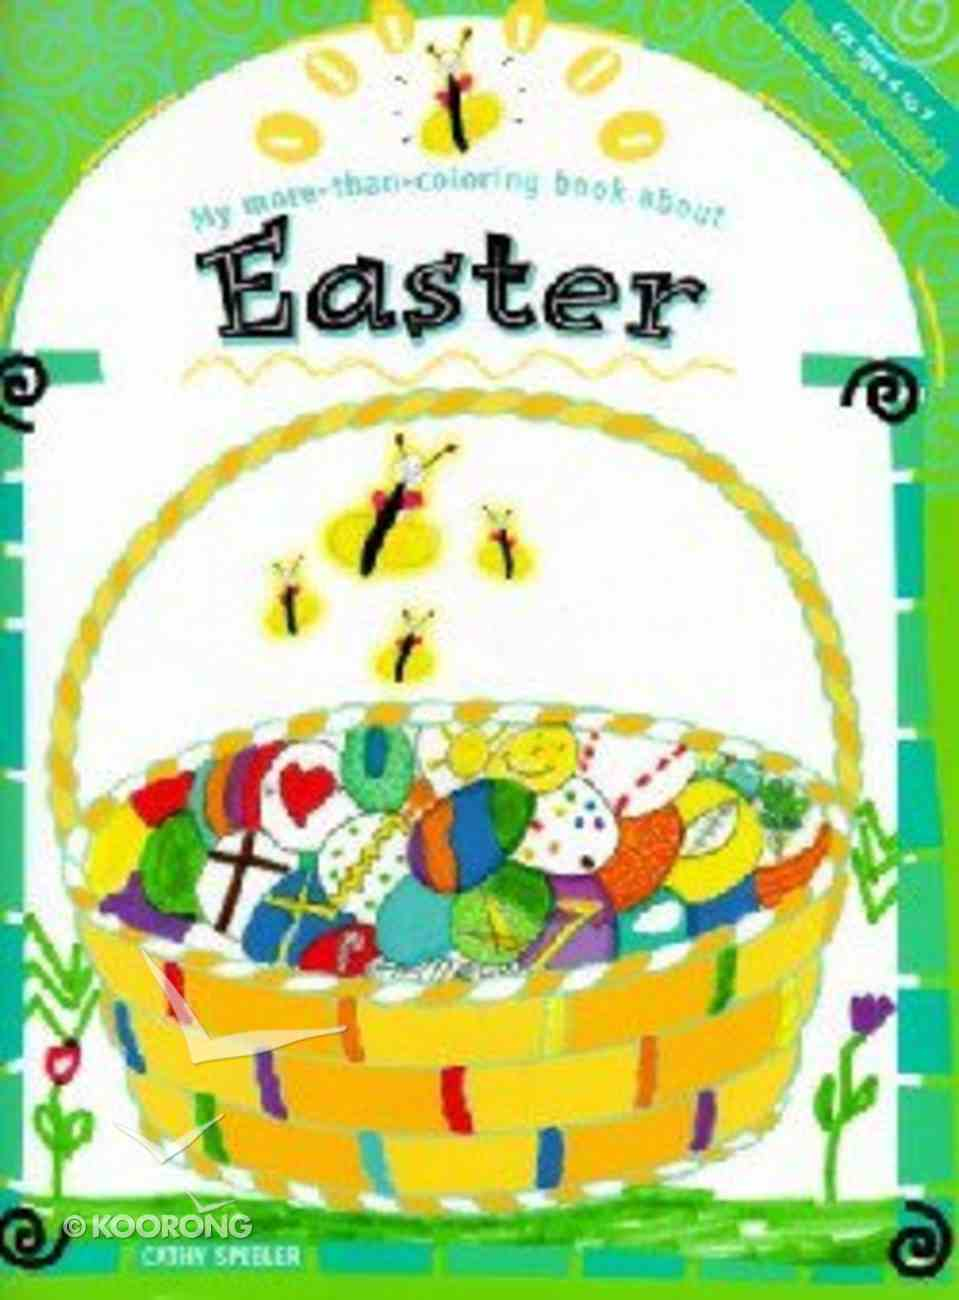 My More-Than-Coloring Book About Easter (My More-than-colouring Book Series) Paperback